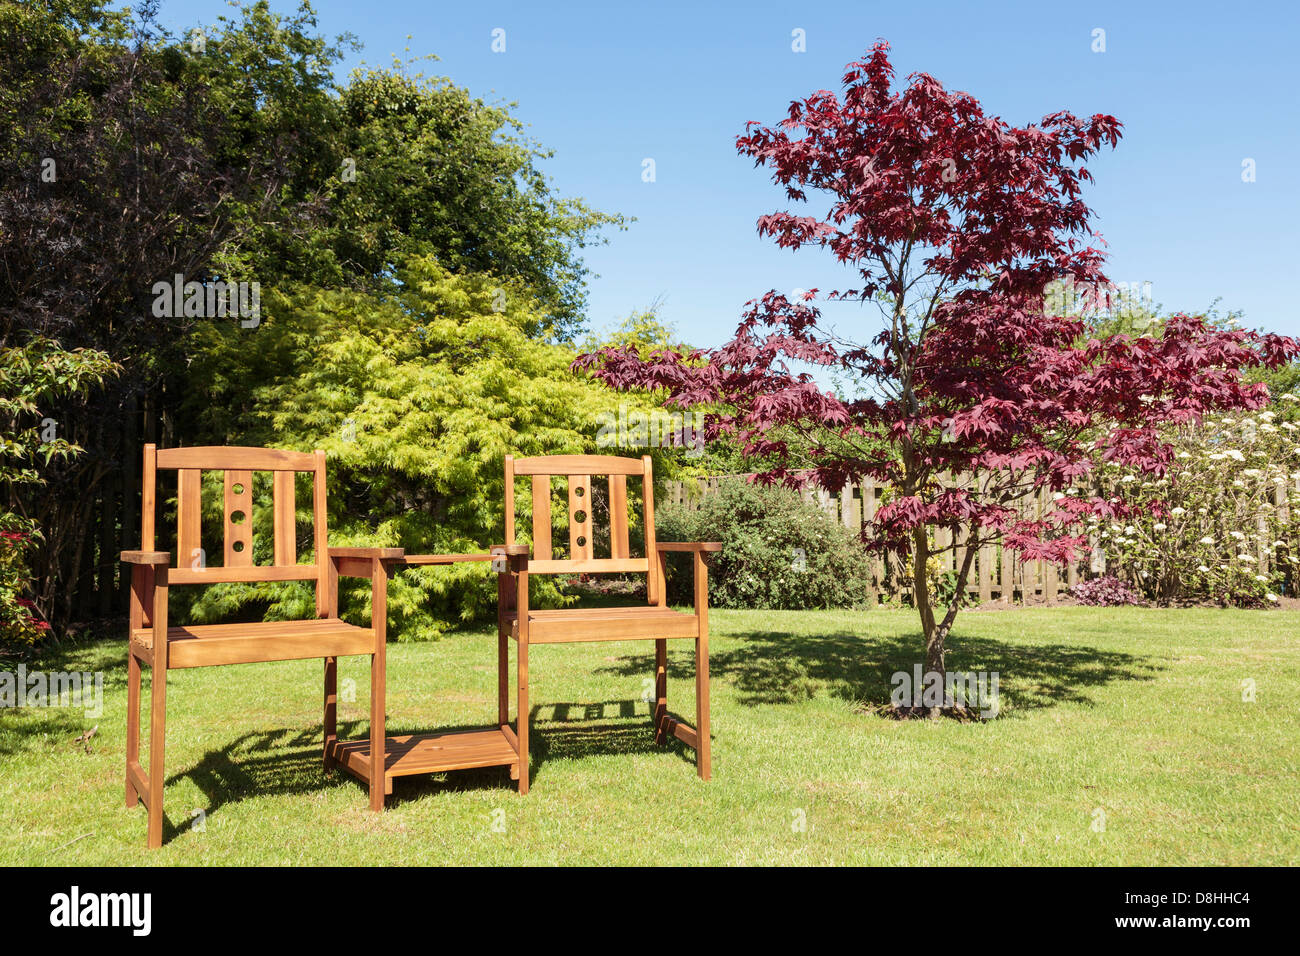 Companion seat or love bench with a table between two seats in sustainable wood by an Acer tree on a domestic back - Stock Image